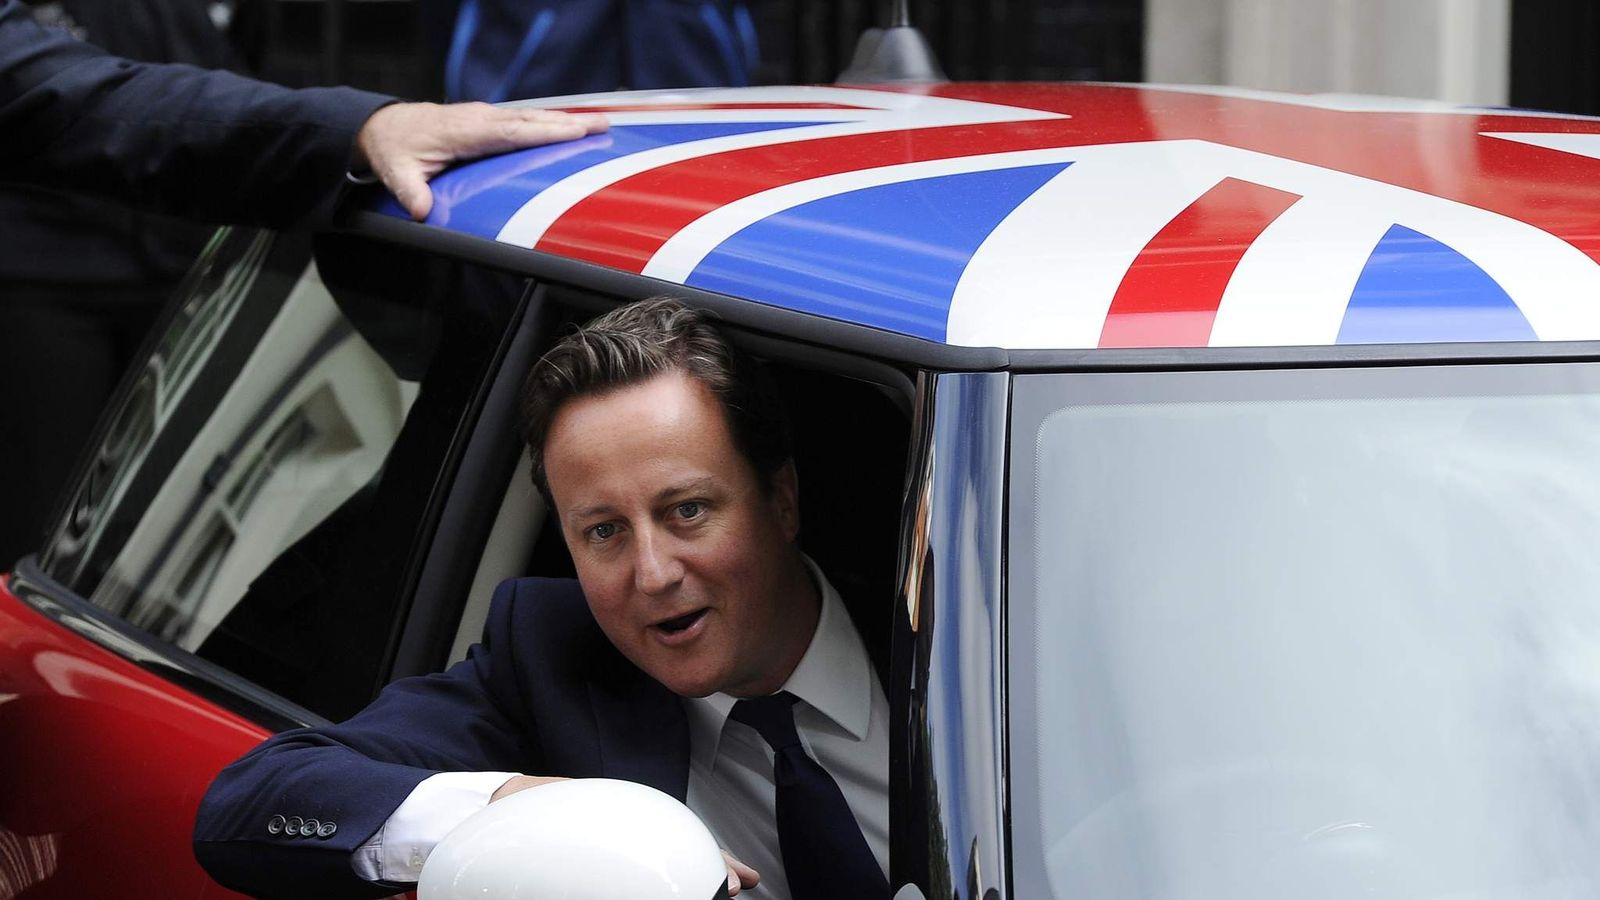 David Cameron in the driving seat of a new Mini